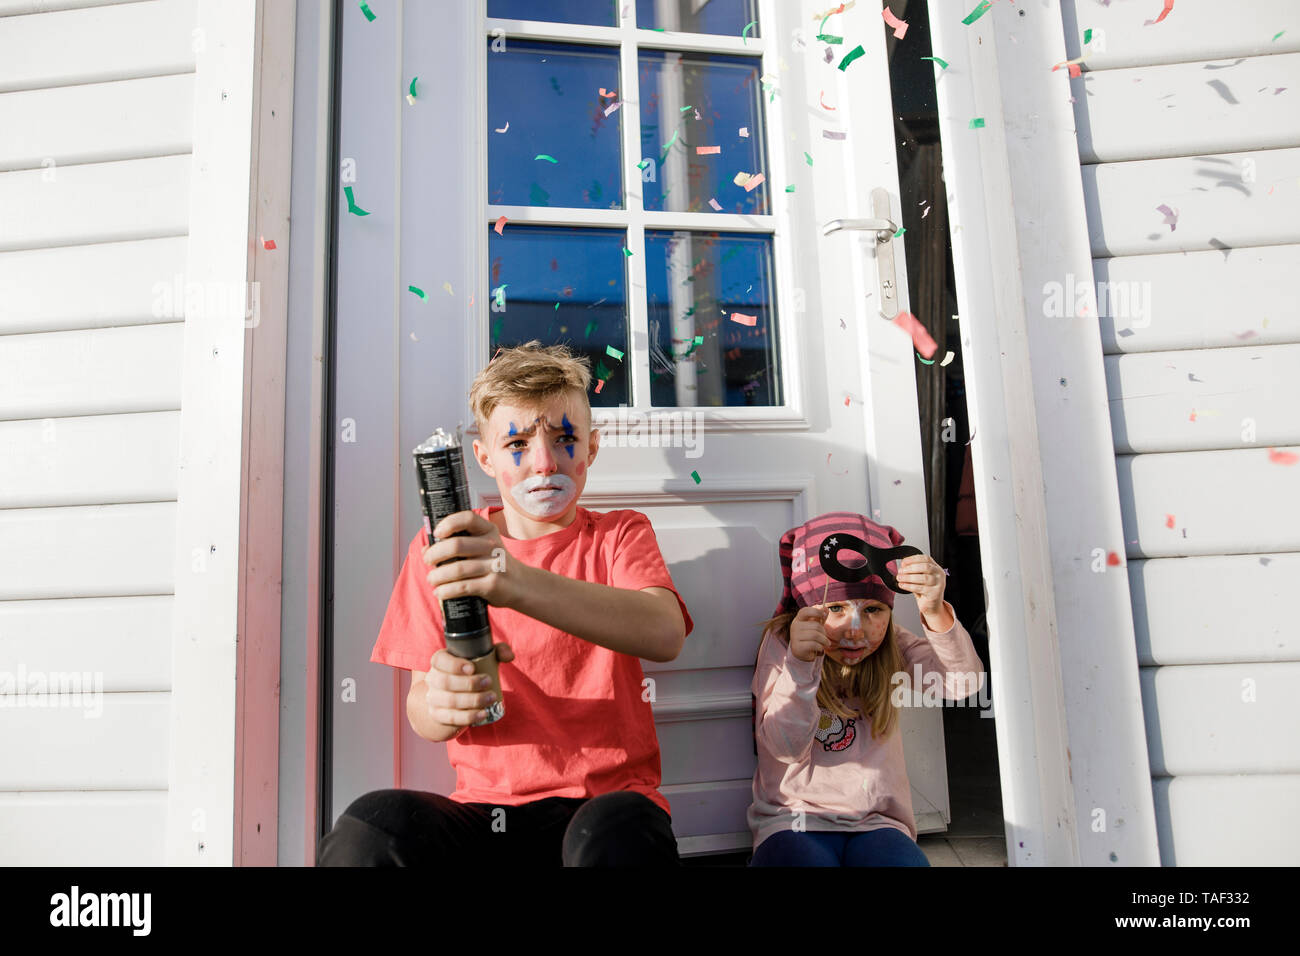 Brother and little sister made up for carnival sitting in front of entry door - Stock Image